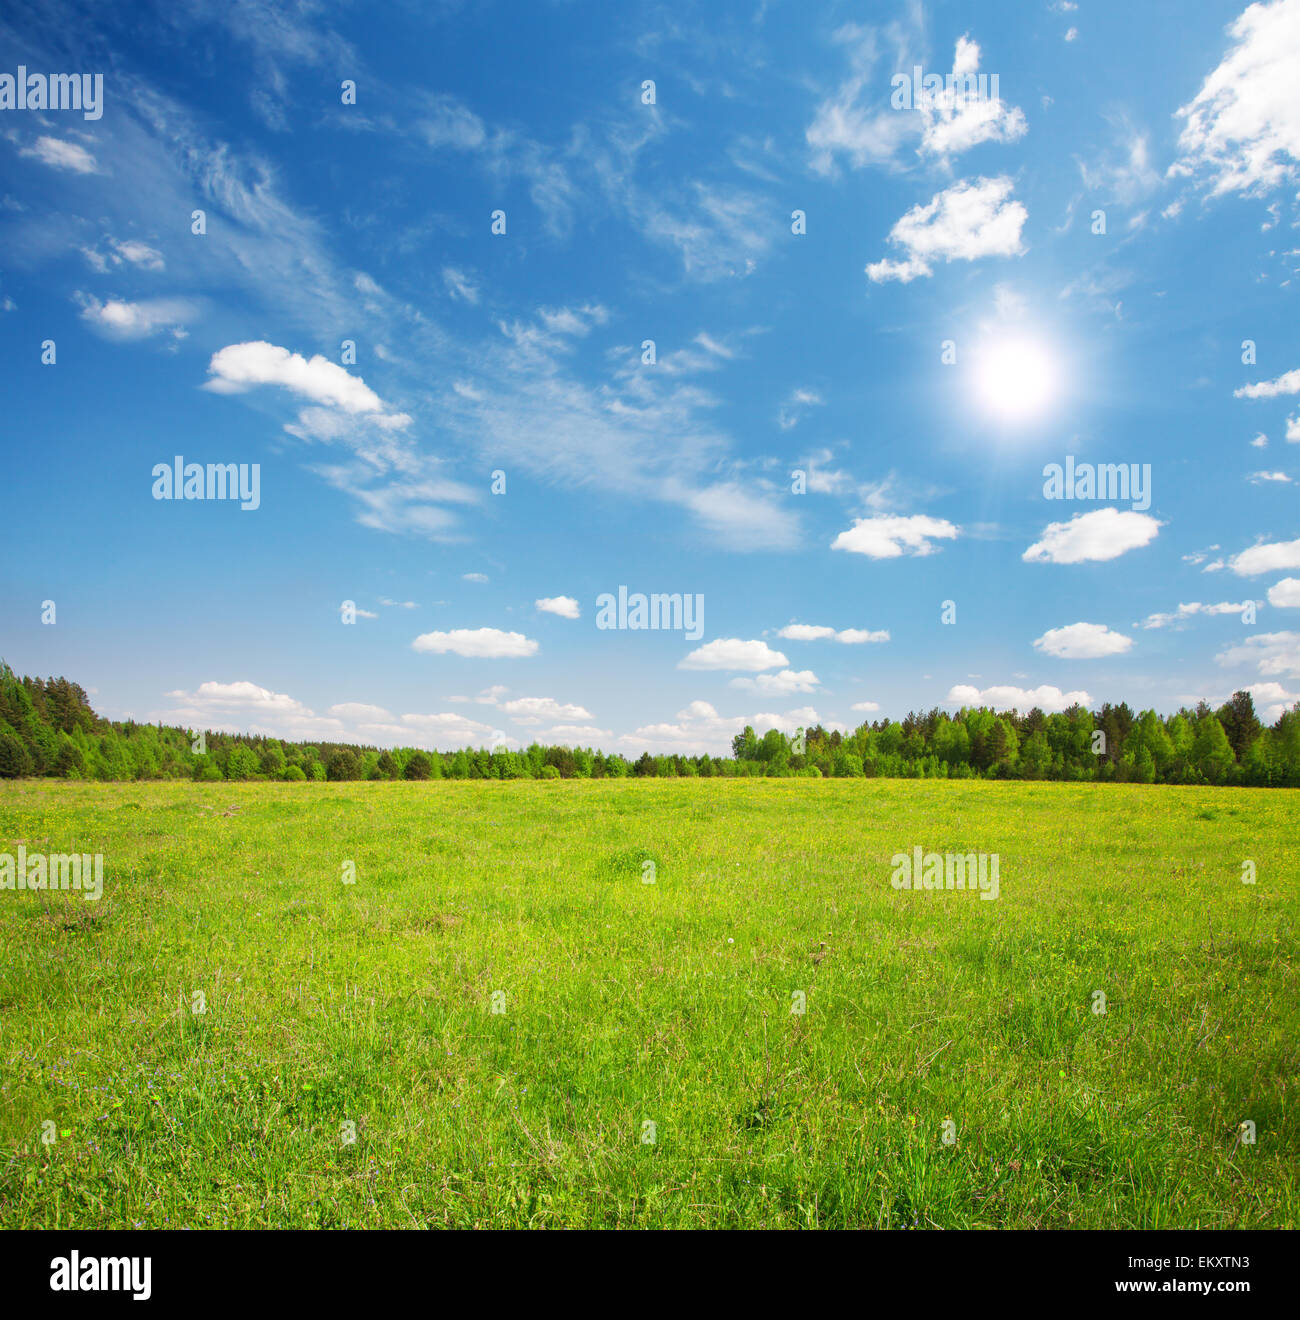 green field and blue cloudy sky - Stock Image